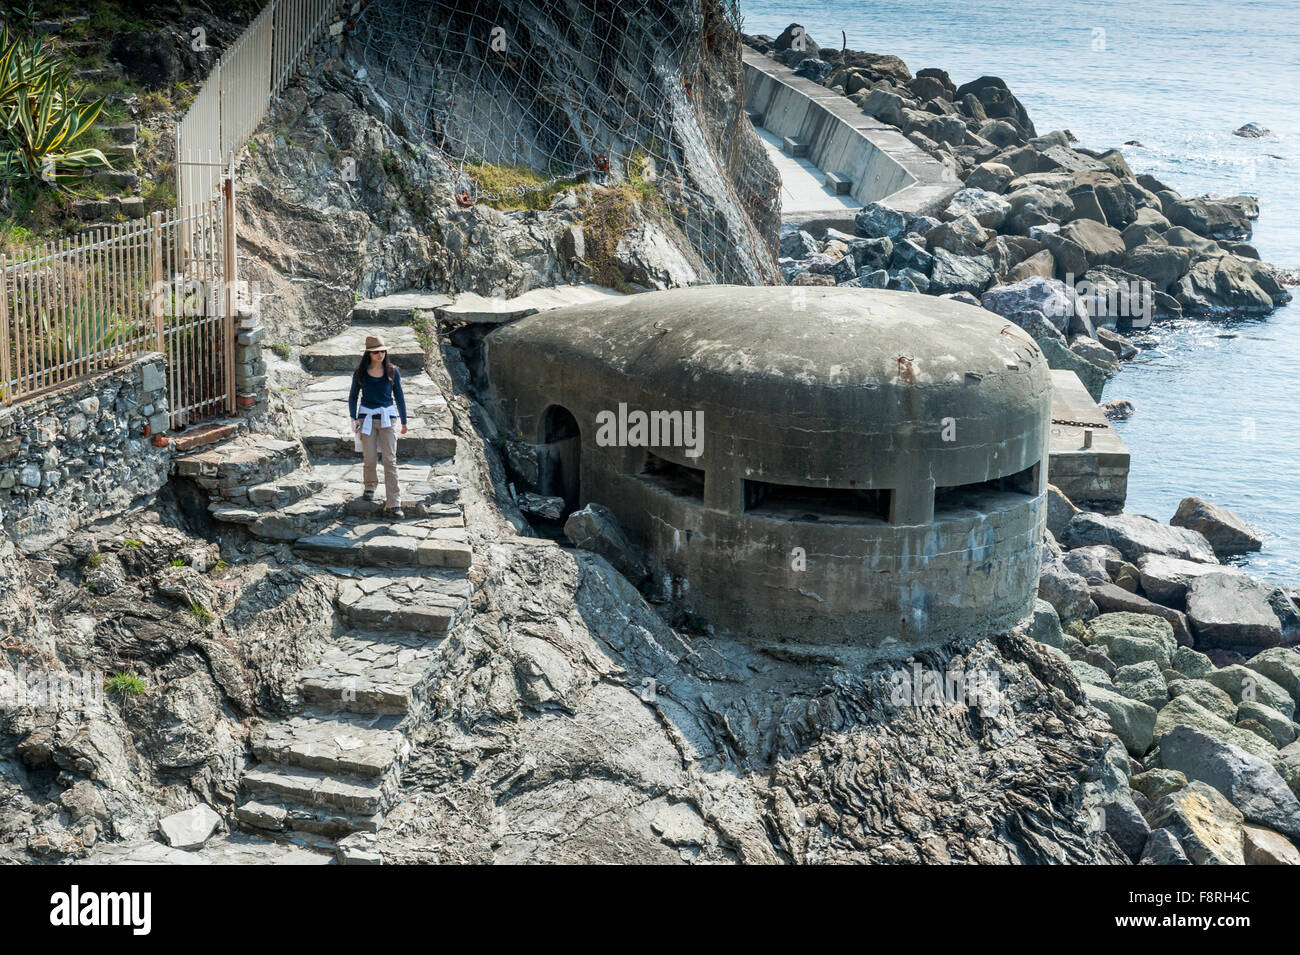 World War 2 bunker or pill box along the coastline of Cinque Terra,Liguria,Italy. - Stock Image